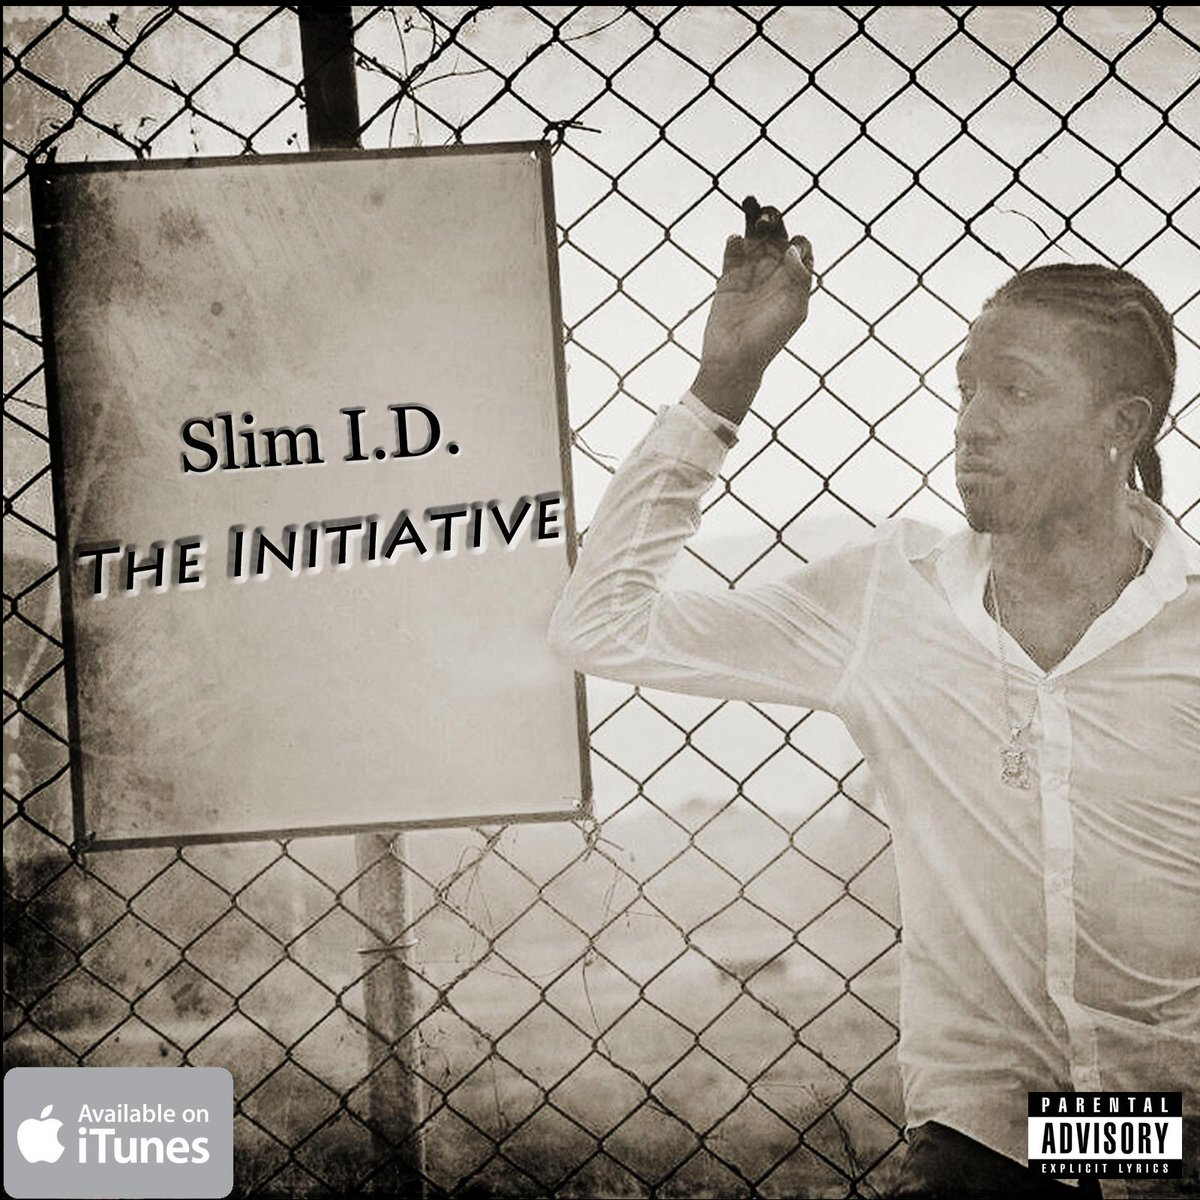 Jamaica, Hip Hop, Music, Blog, 13thStreetPromotions, Slim I.D., Rap, Rapper, The Initiative,